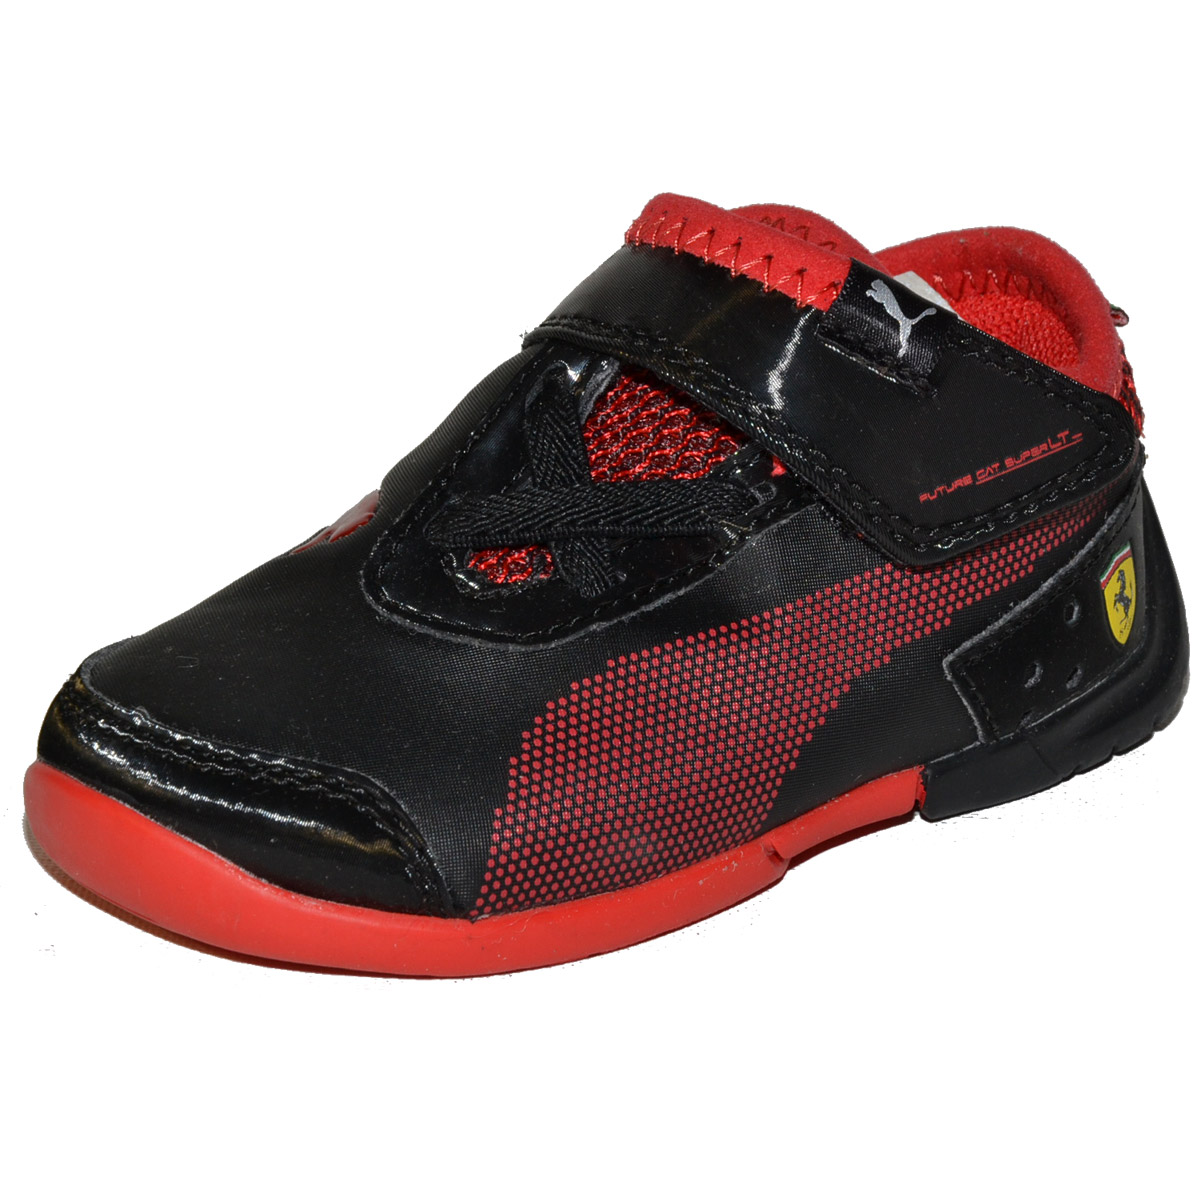 boys shoes c uk kids scuderia s driftcat puma ferrari junior red motorsport trainers accs clothes